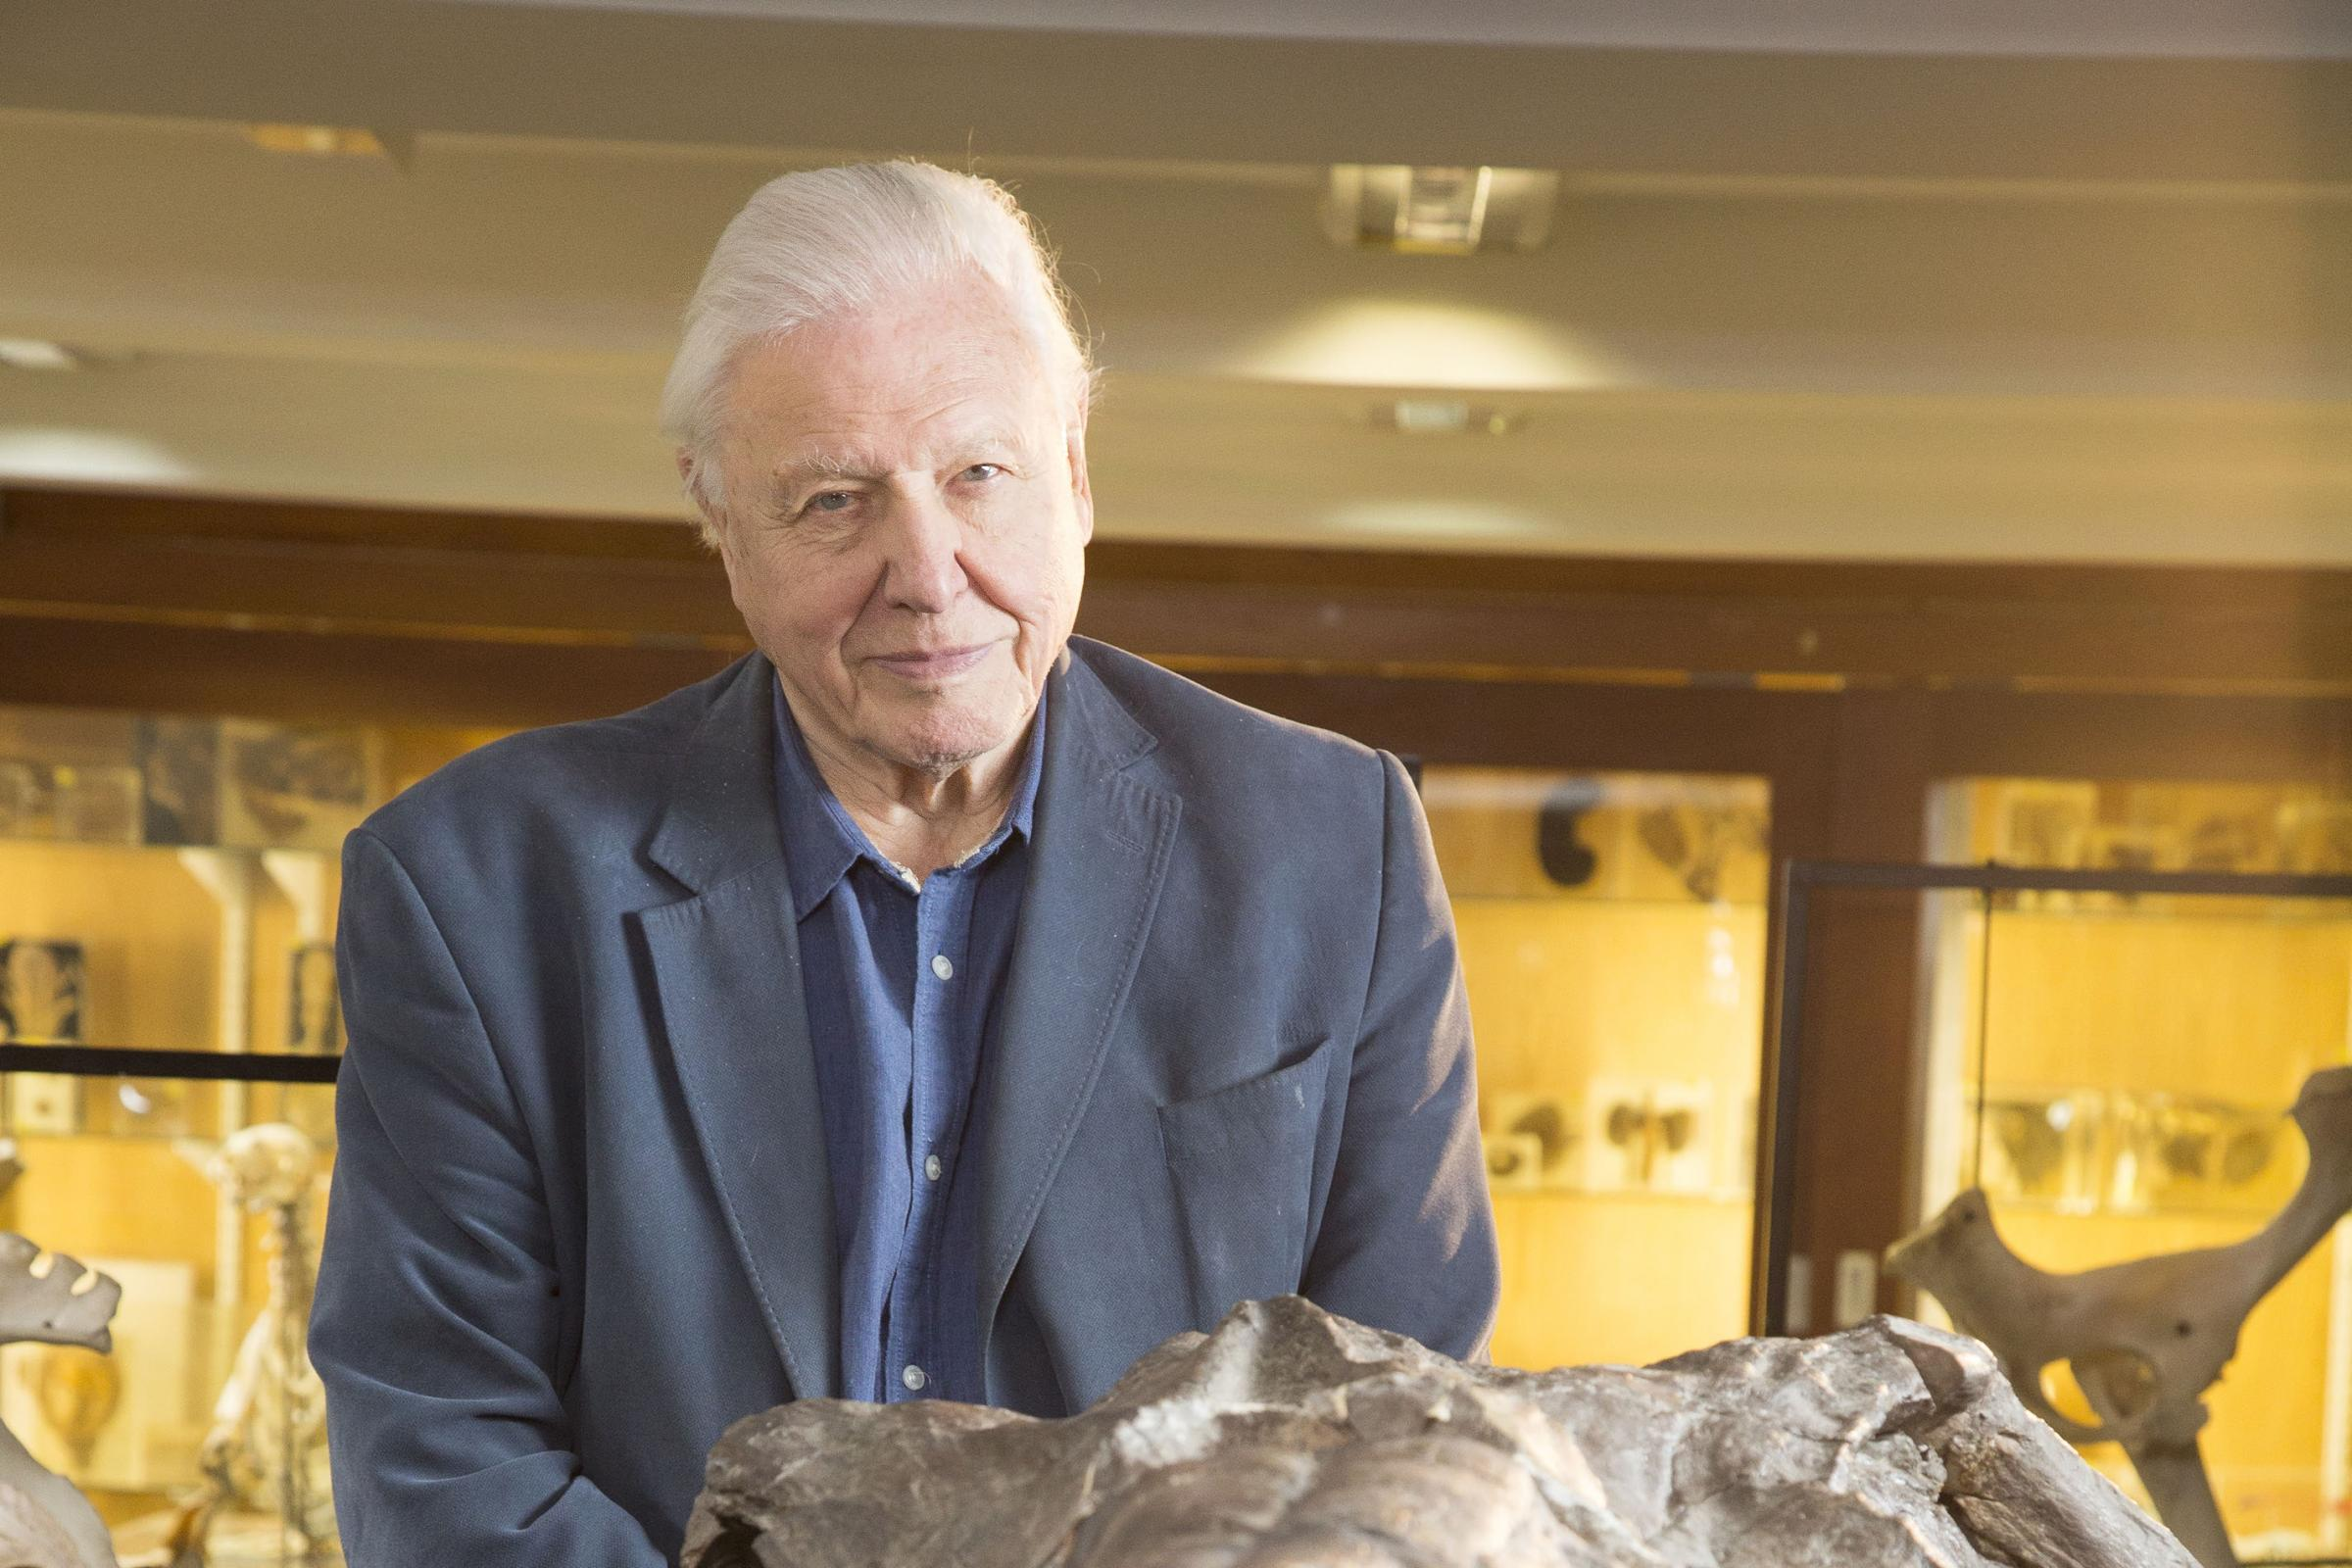 Sir David Attenborough on retirement: I dread not working (BBC/Robin Cox)